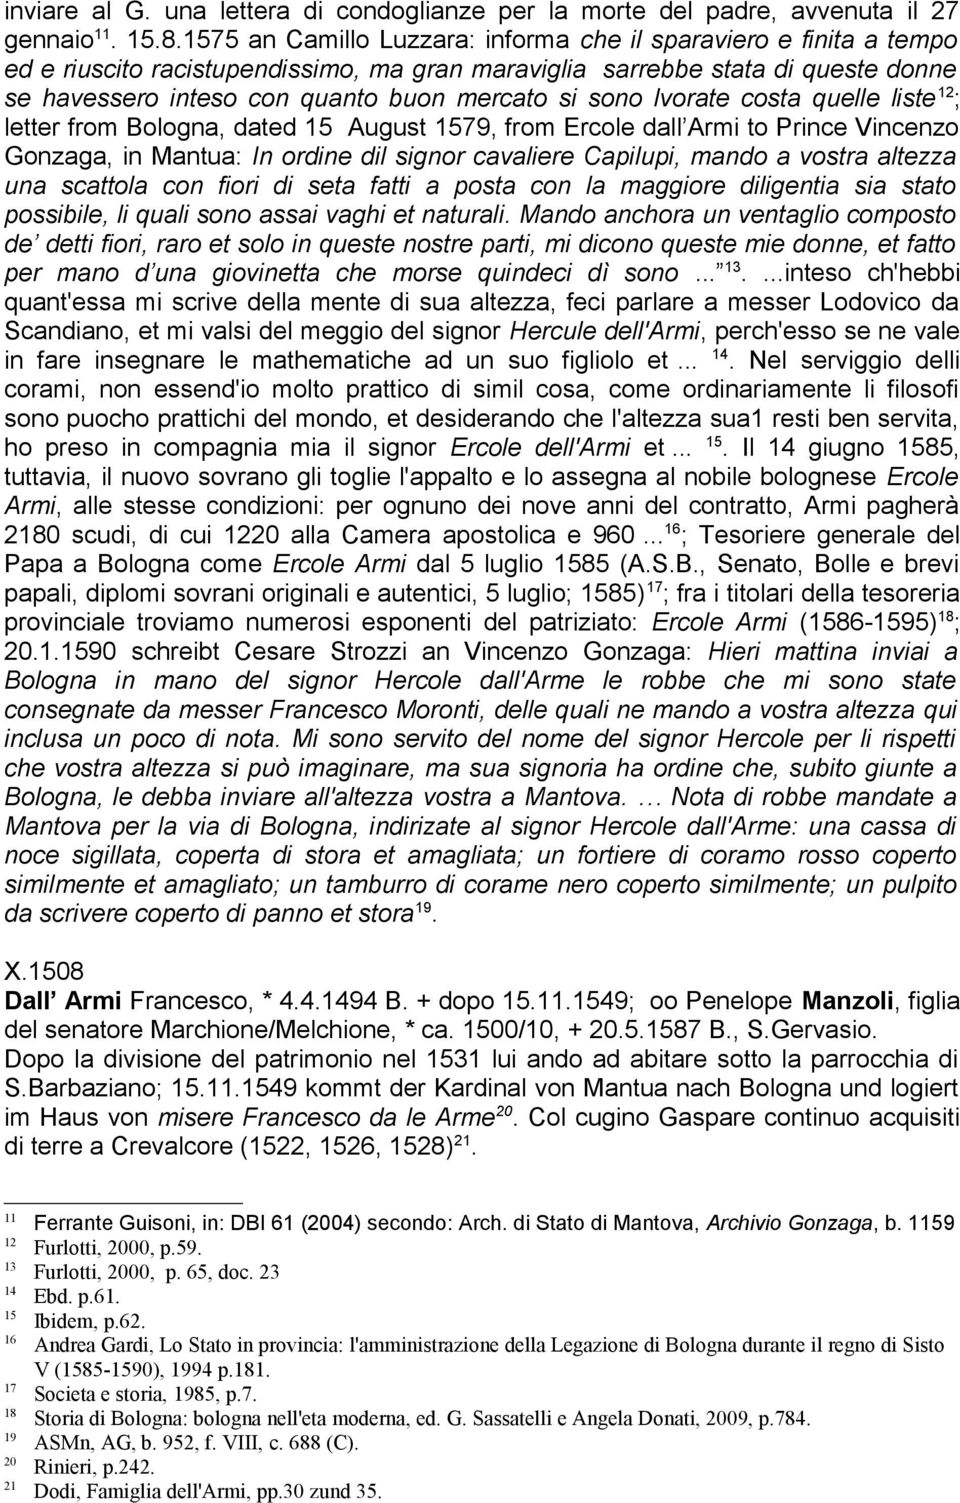 sono lvorate costa quelle liste 12 ; letter from Bologna, dated 15 August 1579, from Ercole dall Armi to Prince Vincenzo Gonzaga, in Mantua: In ordine dil signor cavaliere Capilupi, mando a vostra